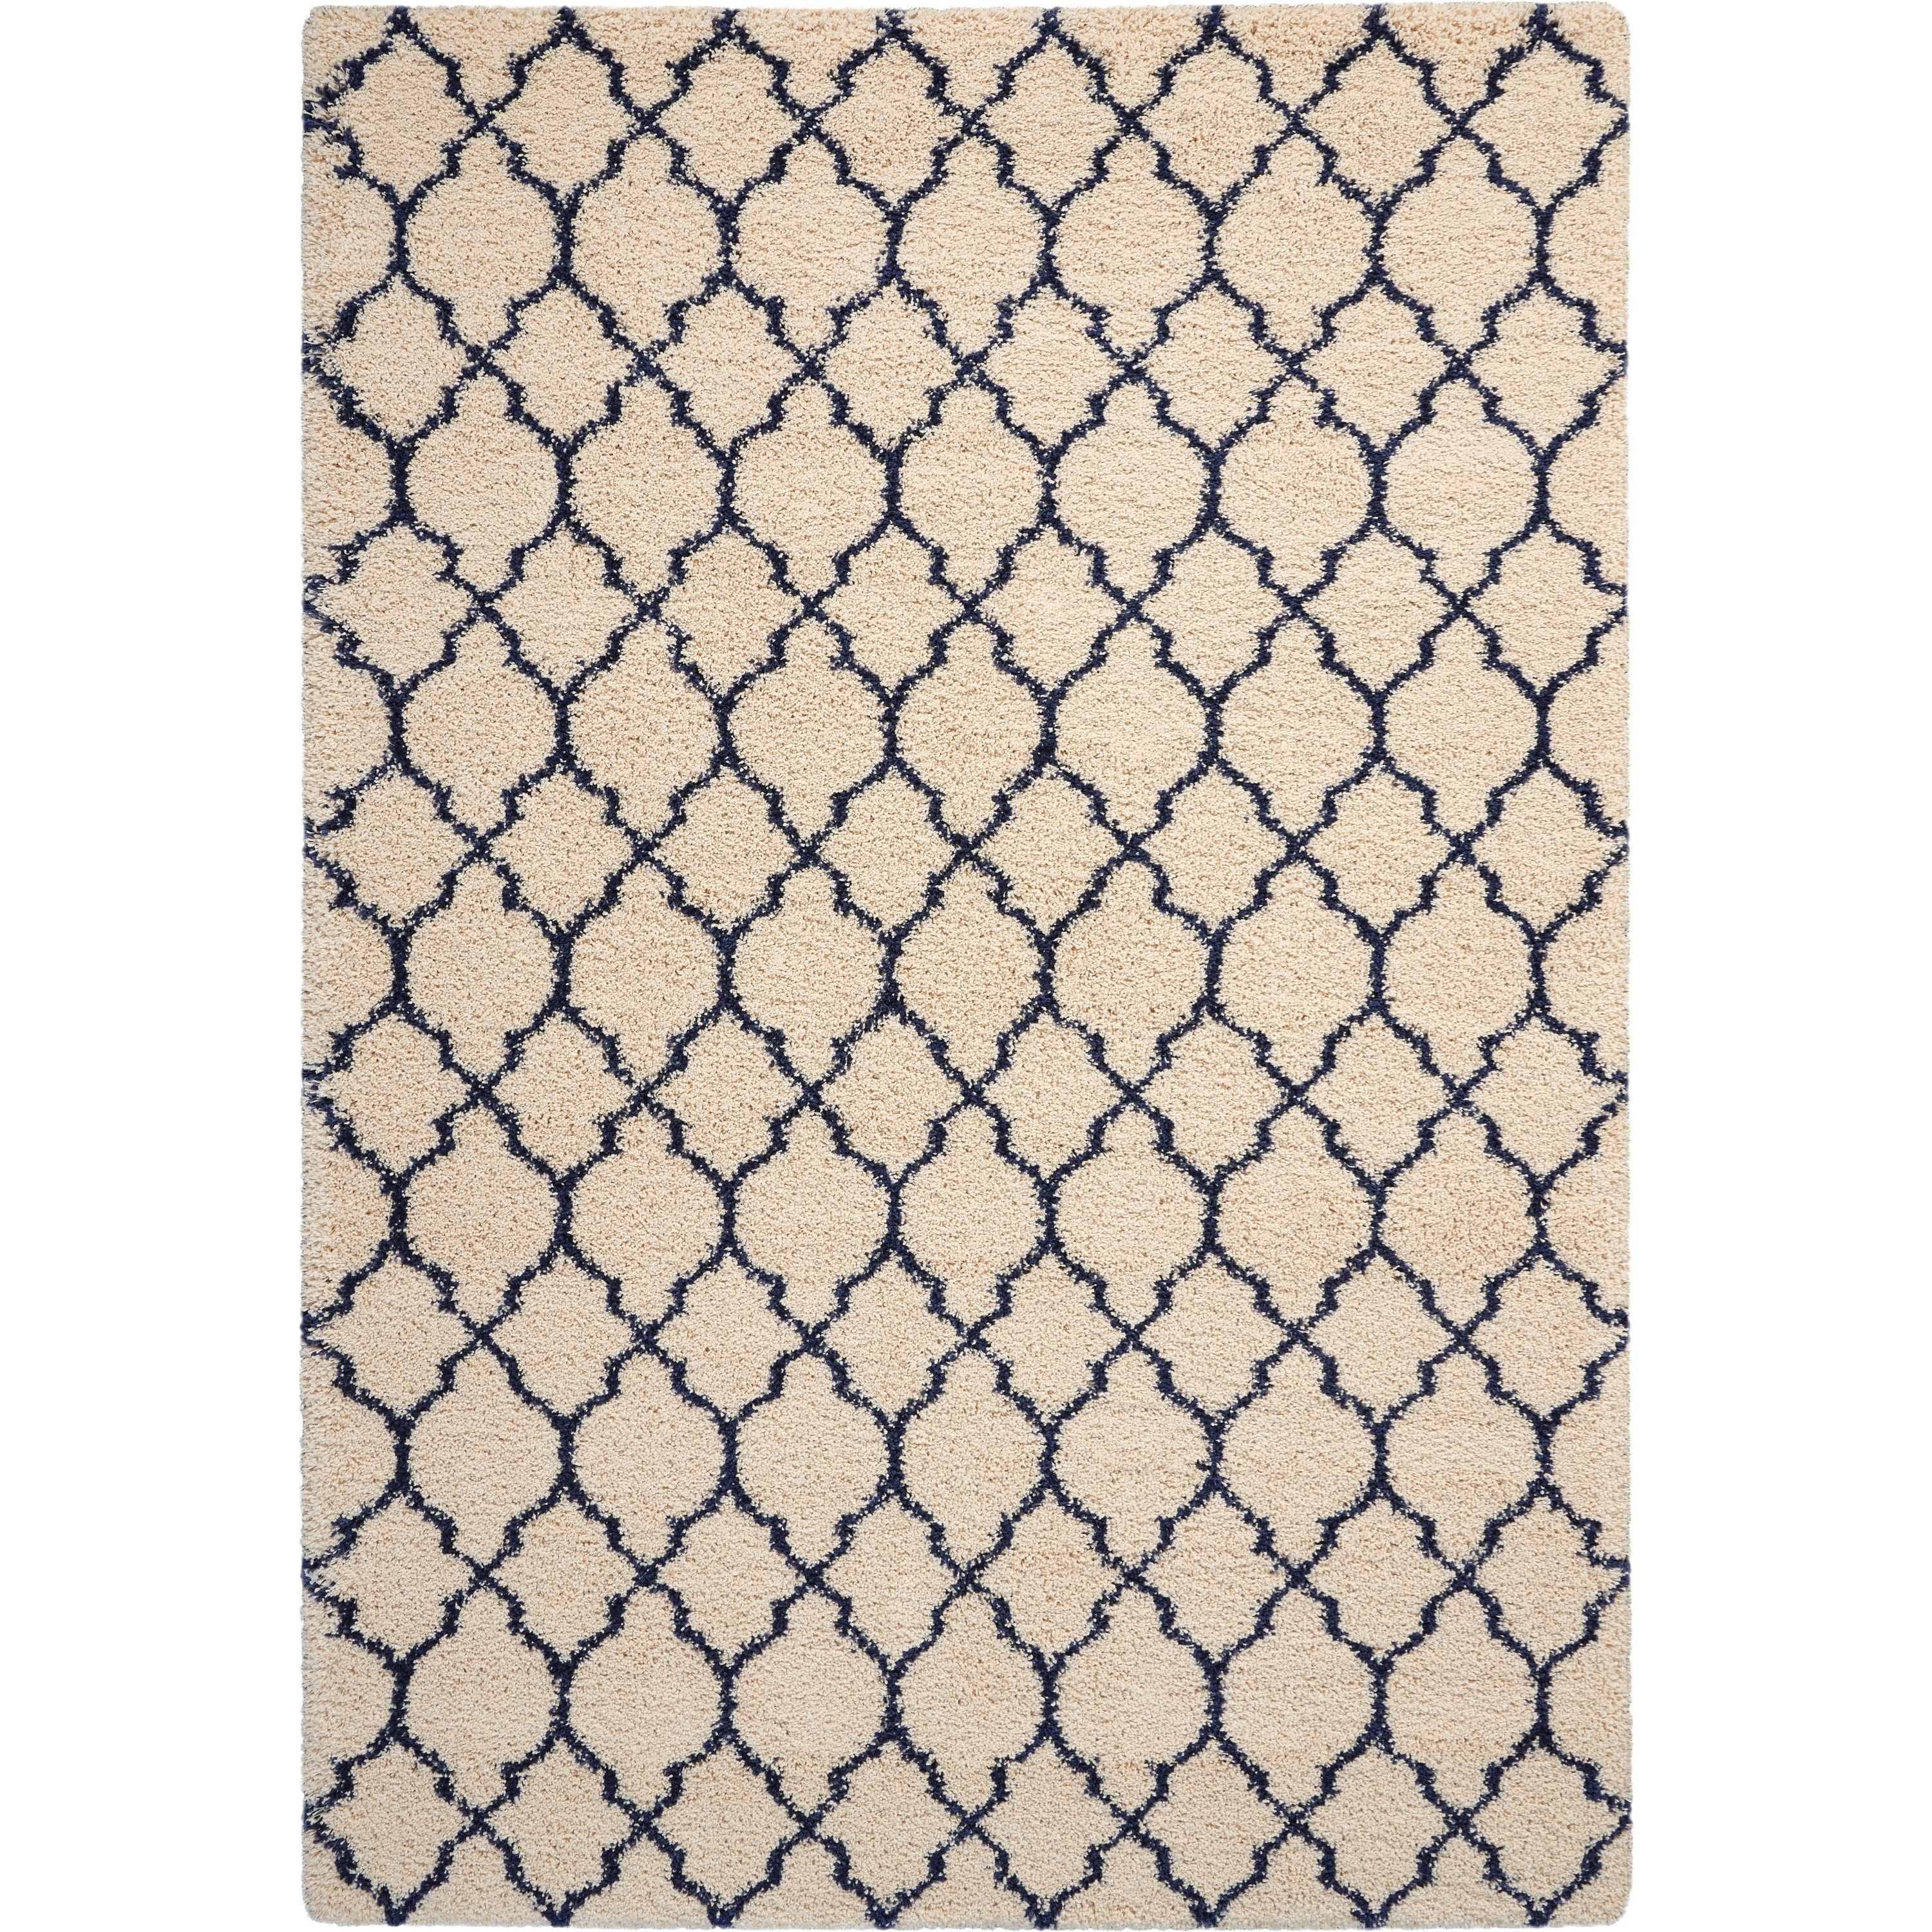 Amore Amore AMOR2 Blue and Ivory 7'x10'   Rug by Nourison at Home Collections Furniture